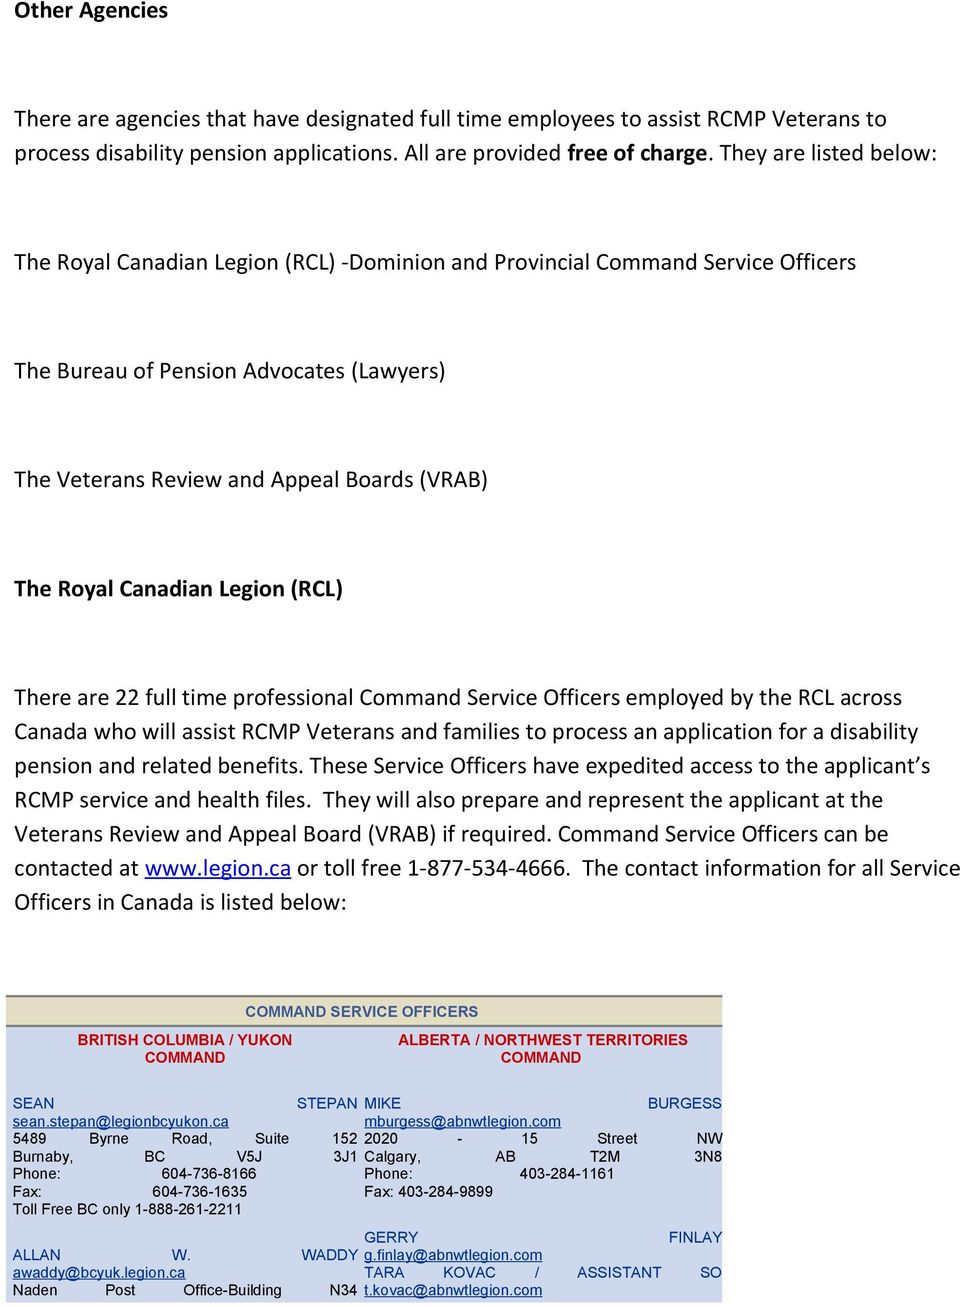 Royal Canadian Legion (RCL) There are 22 full time professional Command Service Officers employed by the RCL across Canada who will assist RCMP Veterans and families to process an application for a